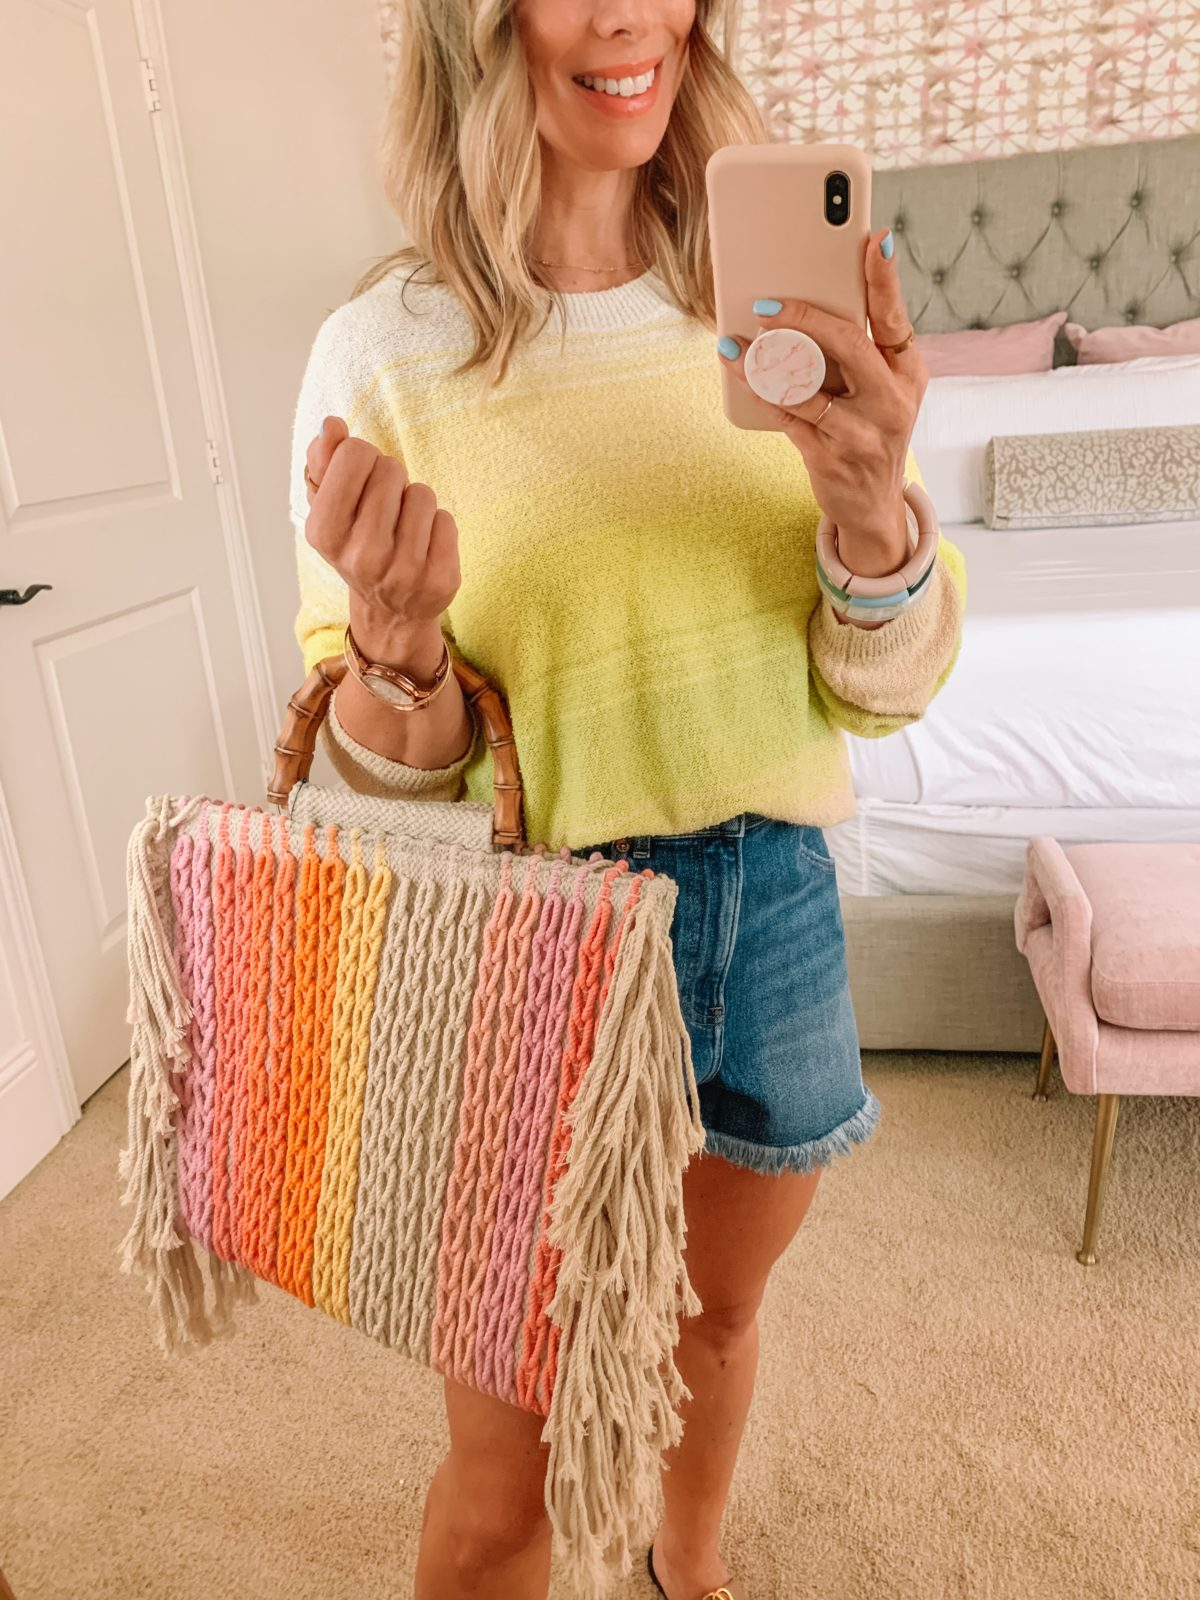 Dressing Room Finds, Walmart, Yellow Sweater, Shorts, Sandals, Rainbow Tote